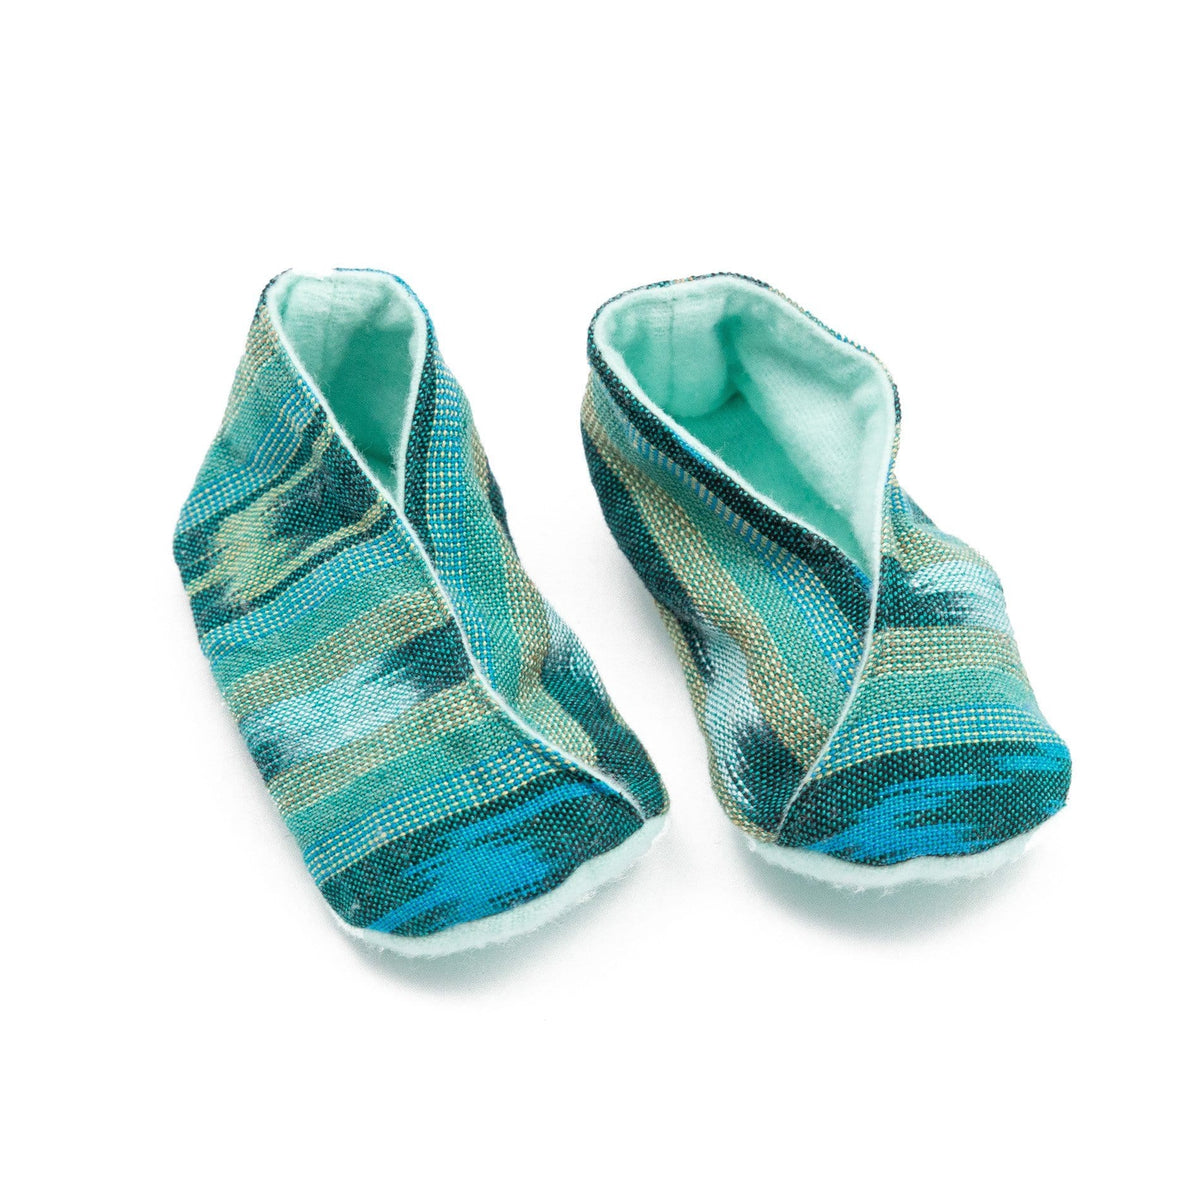 Fair Trade Handwoven Baby Booties Green Jaspe